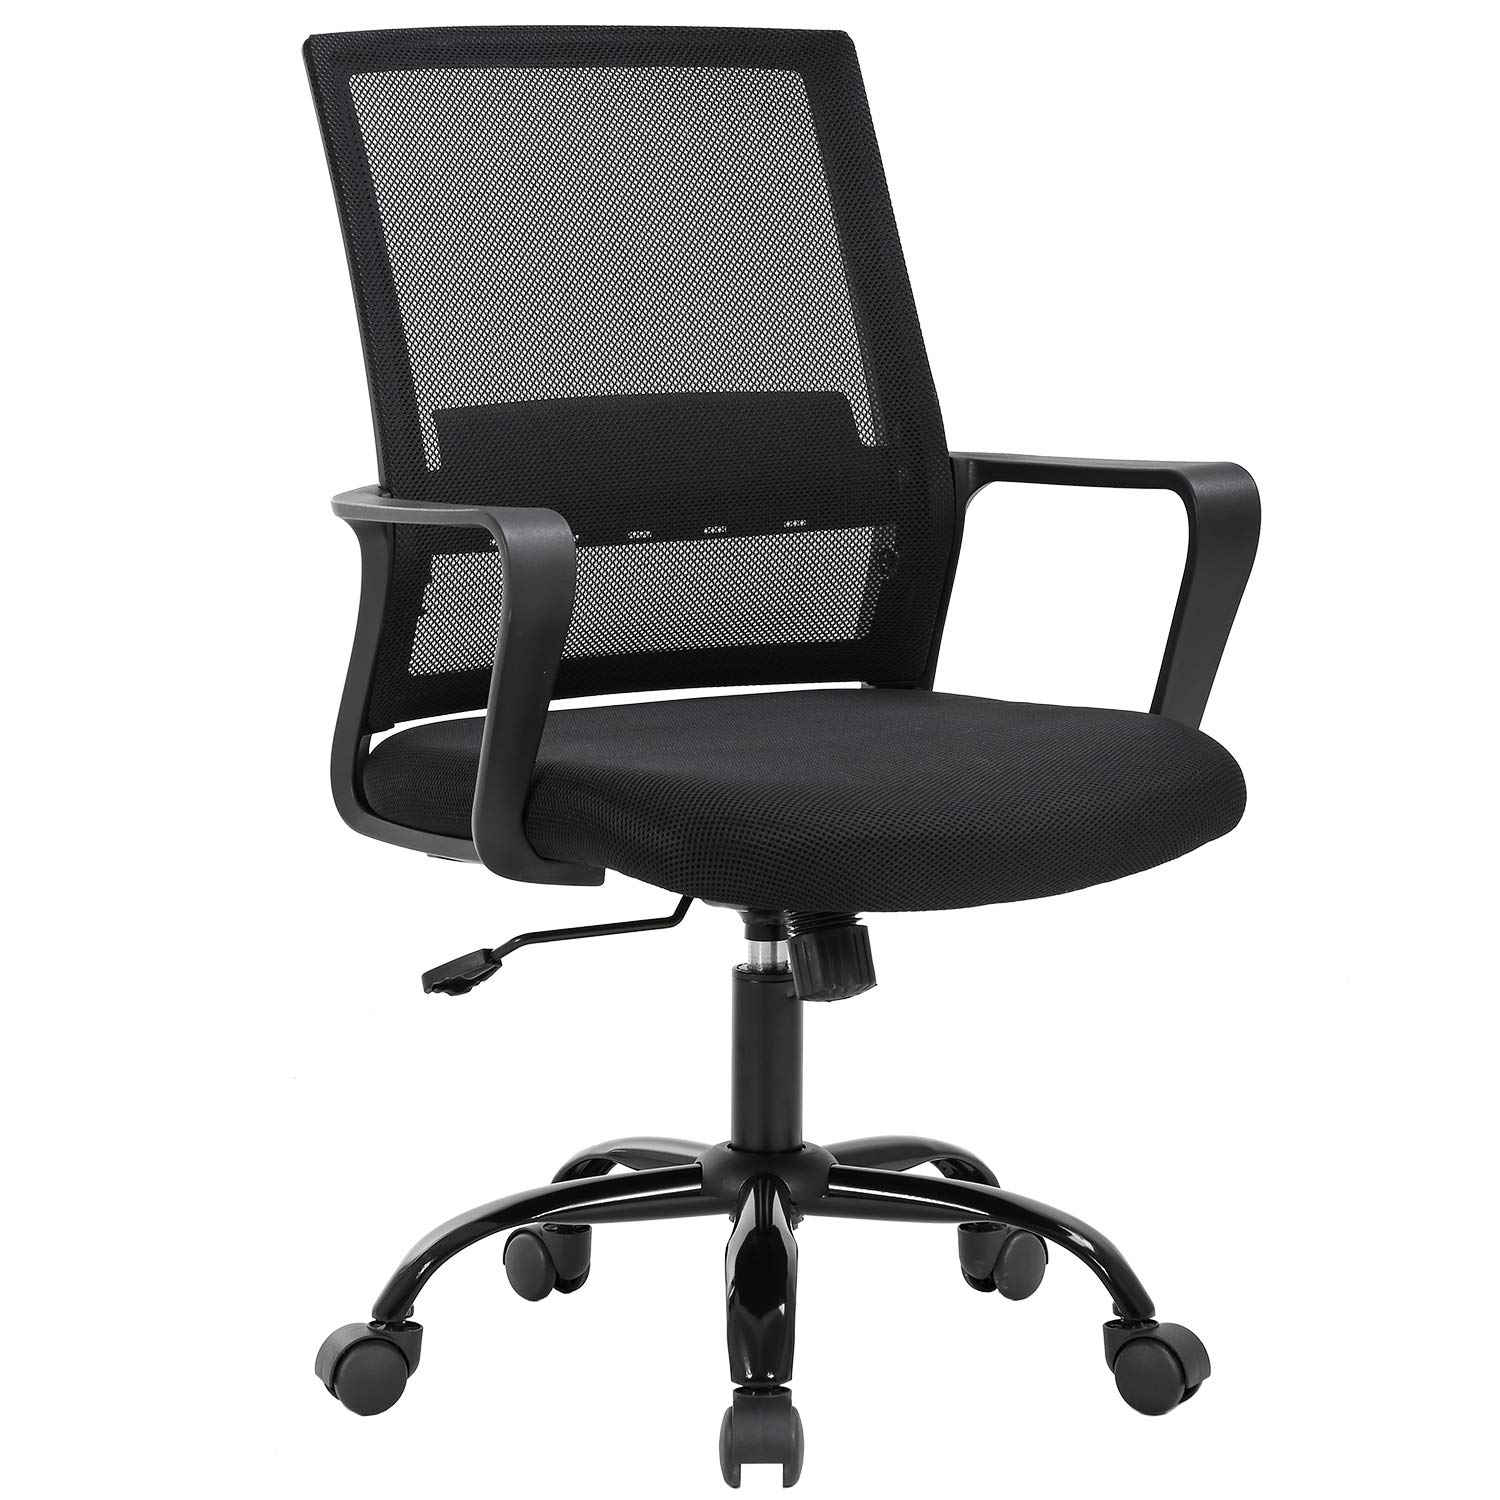 Home Office Chair Ergonomic Cheap Desk Chair Swivel Rolling Computer Chair Executive Lumbar Support Task Mesh Chair Adjustable Stool for Women Men,Black by BestOffice